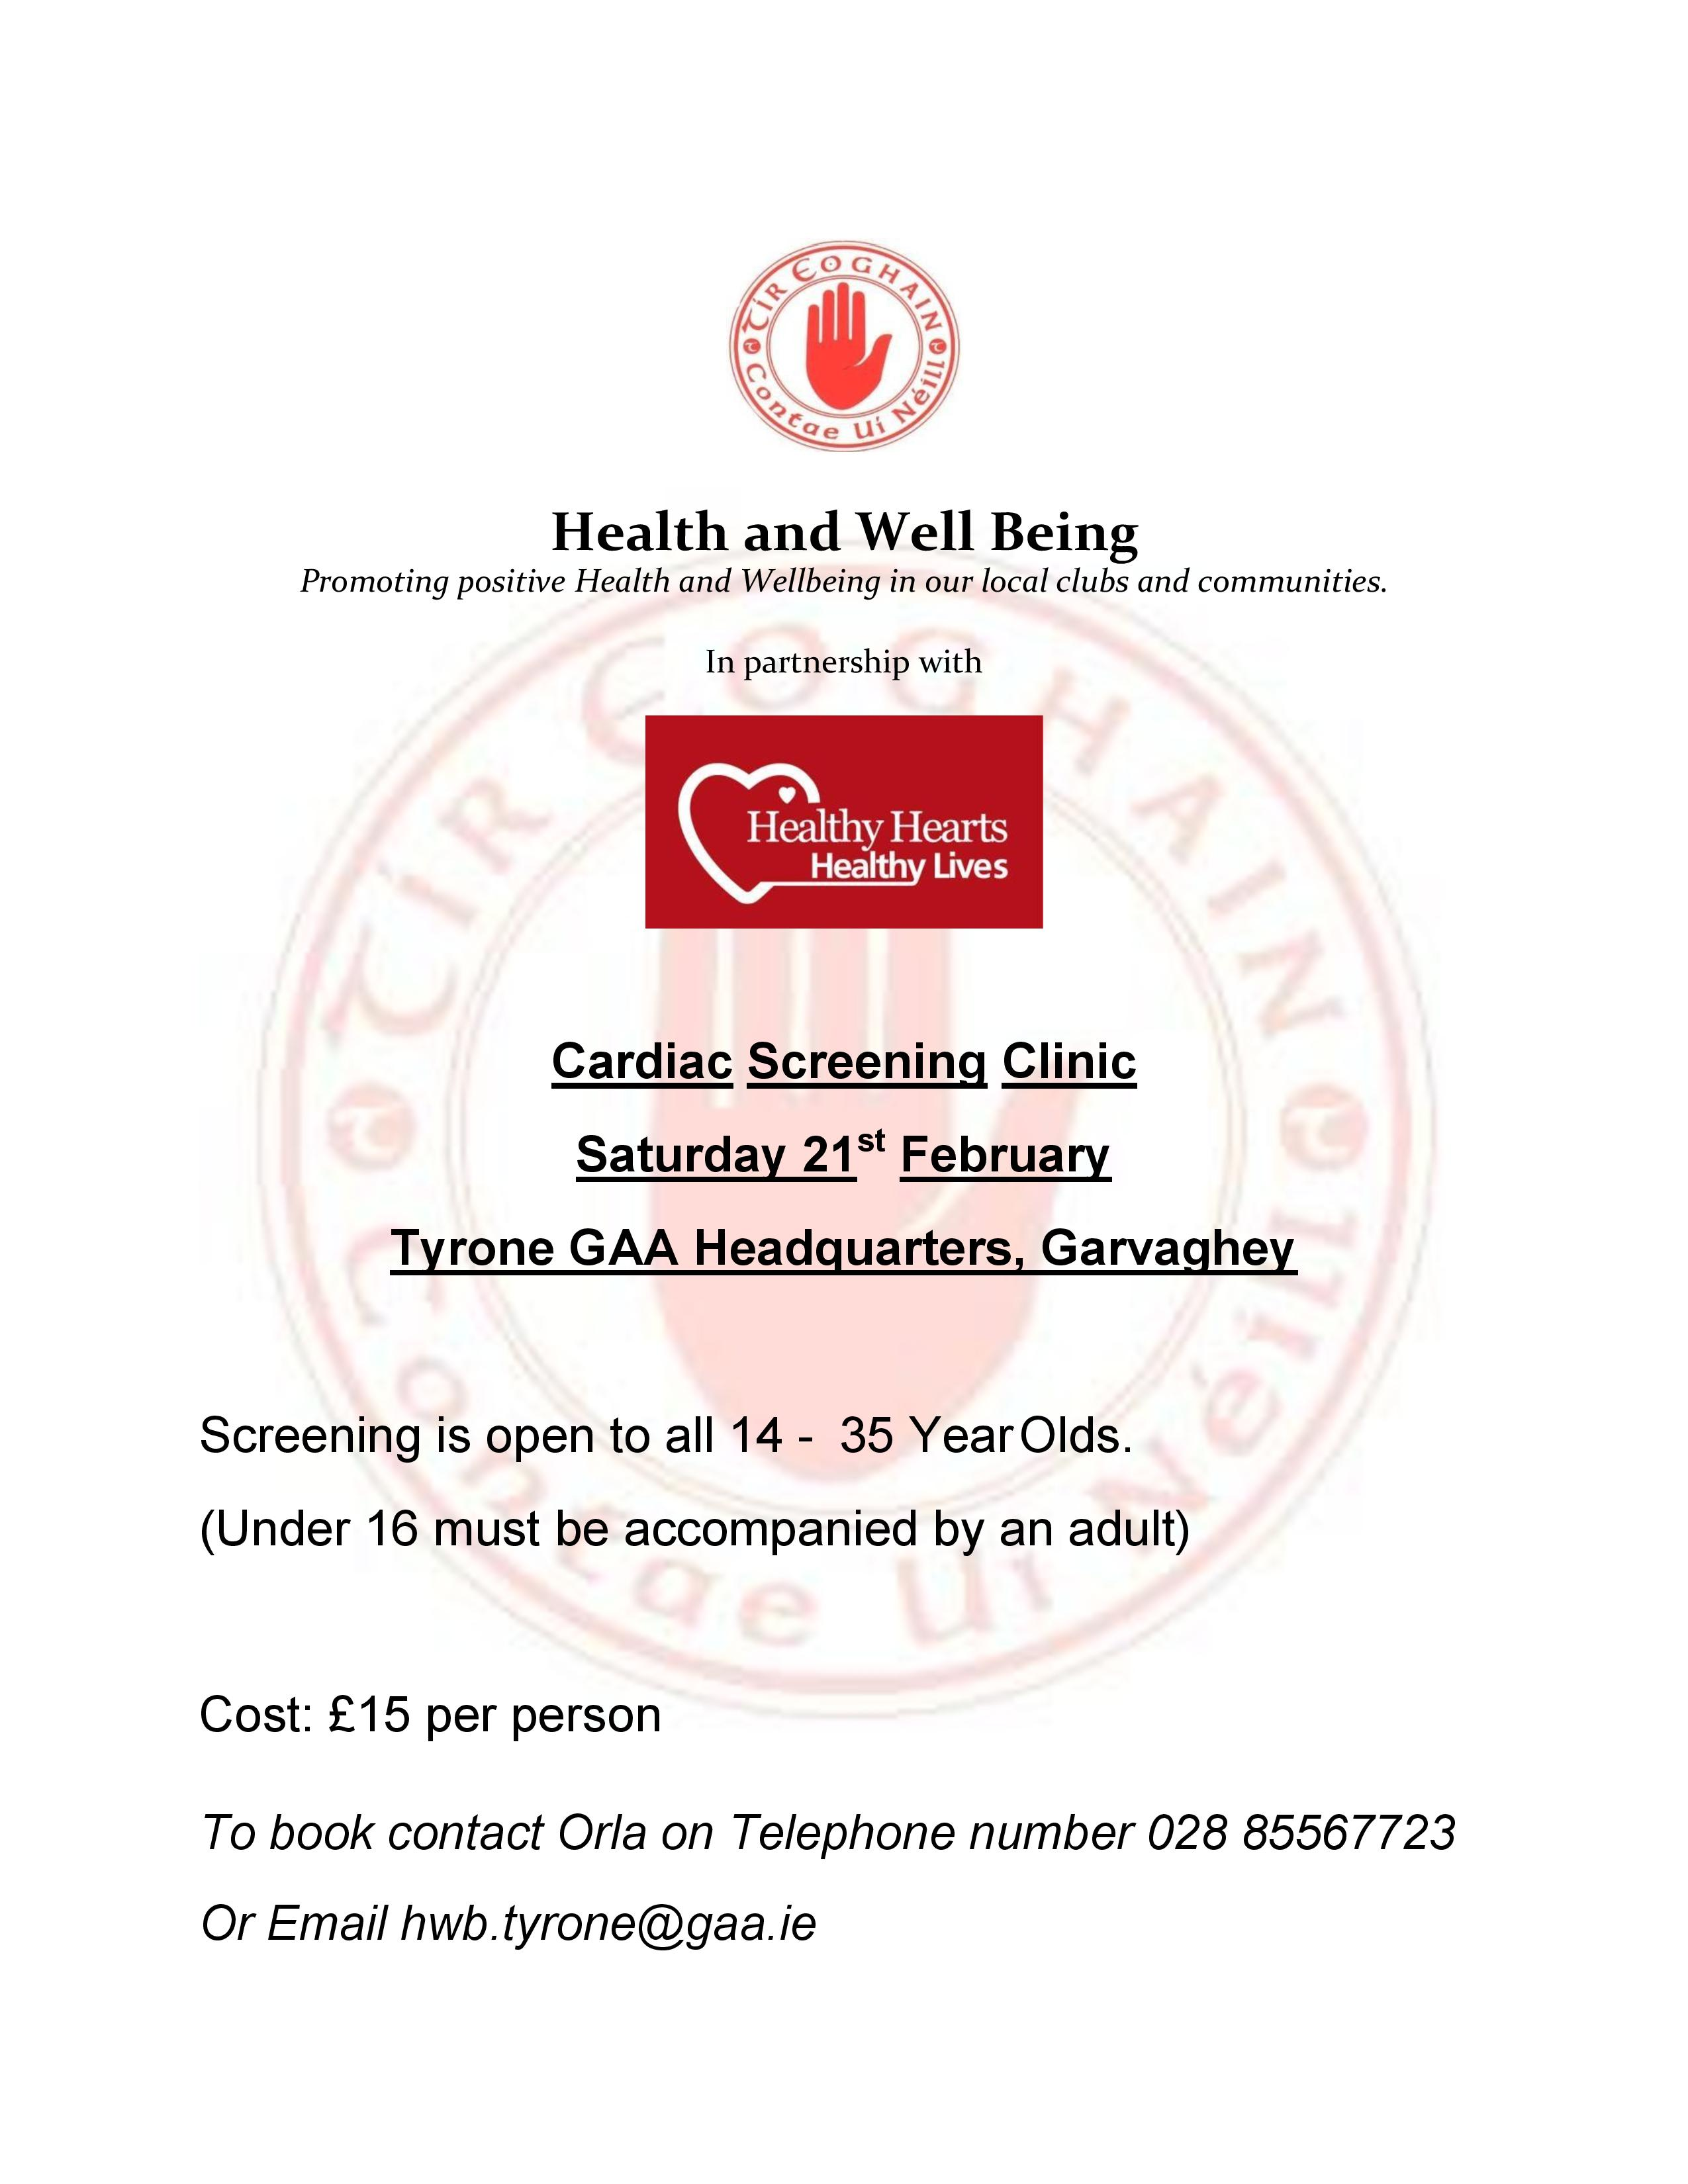 NOW FULLY BOOKED! Cardiac Screening Clinic at Garvaghey 21st February